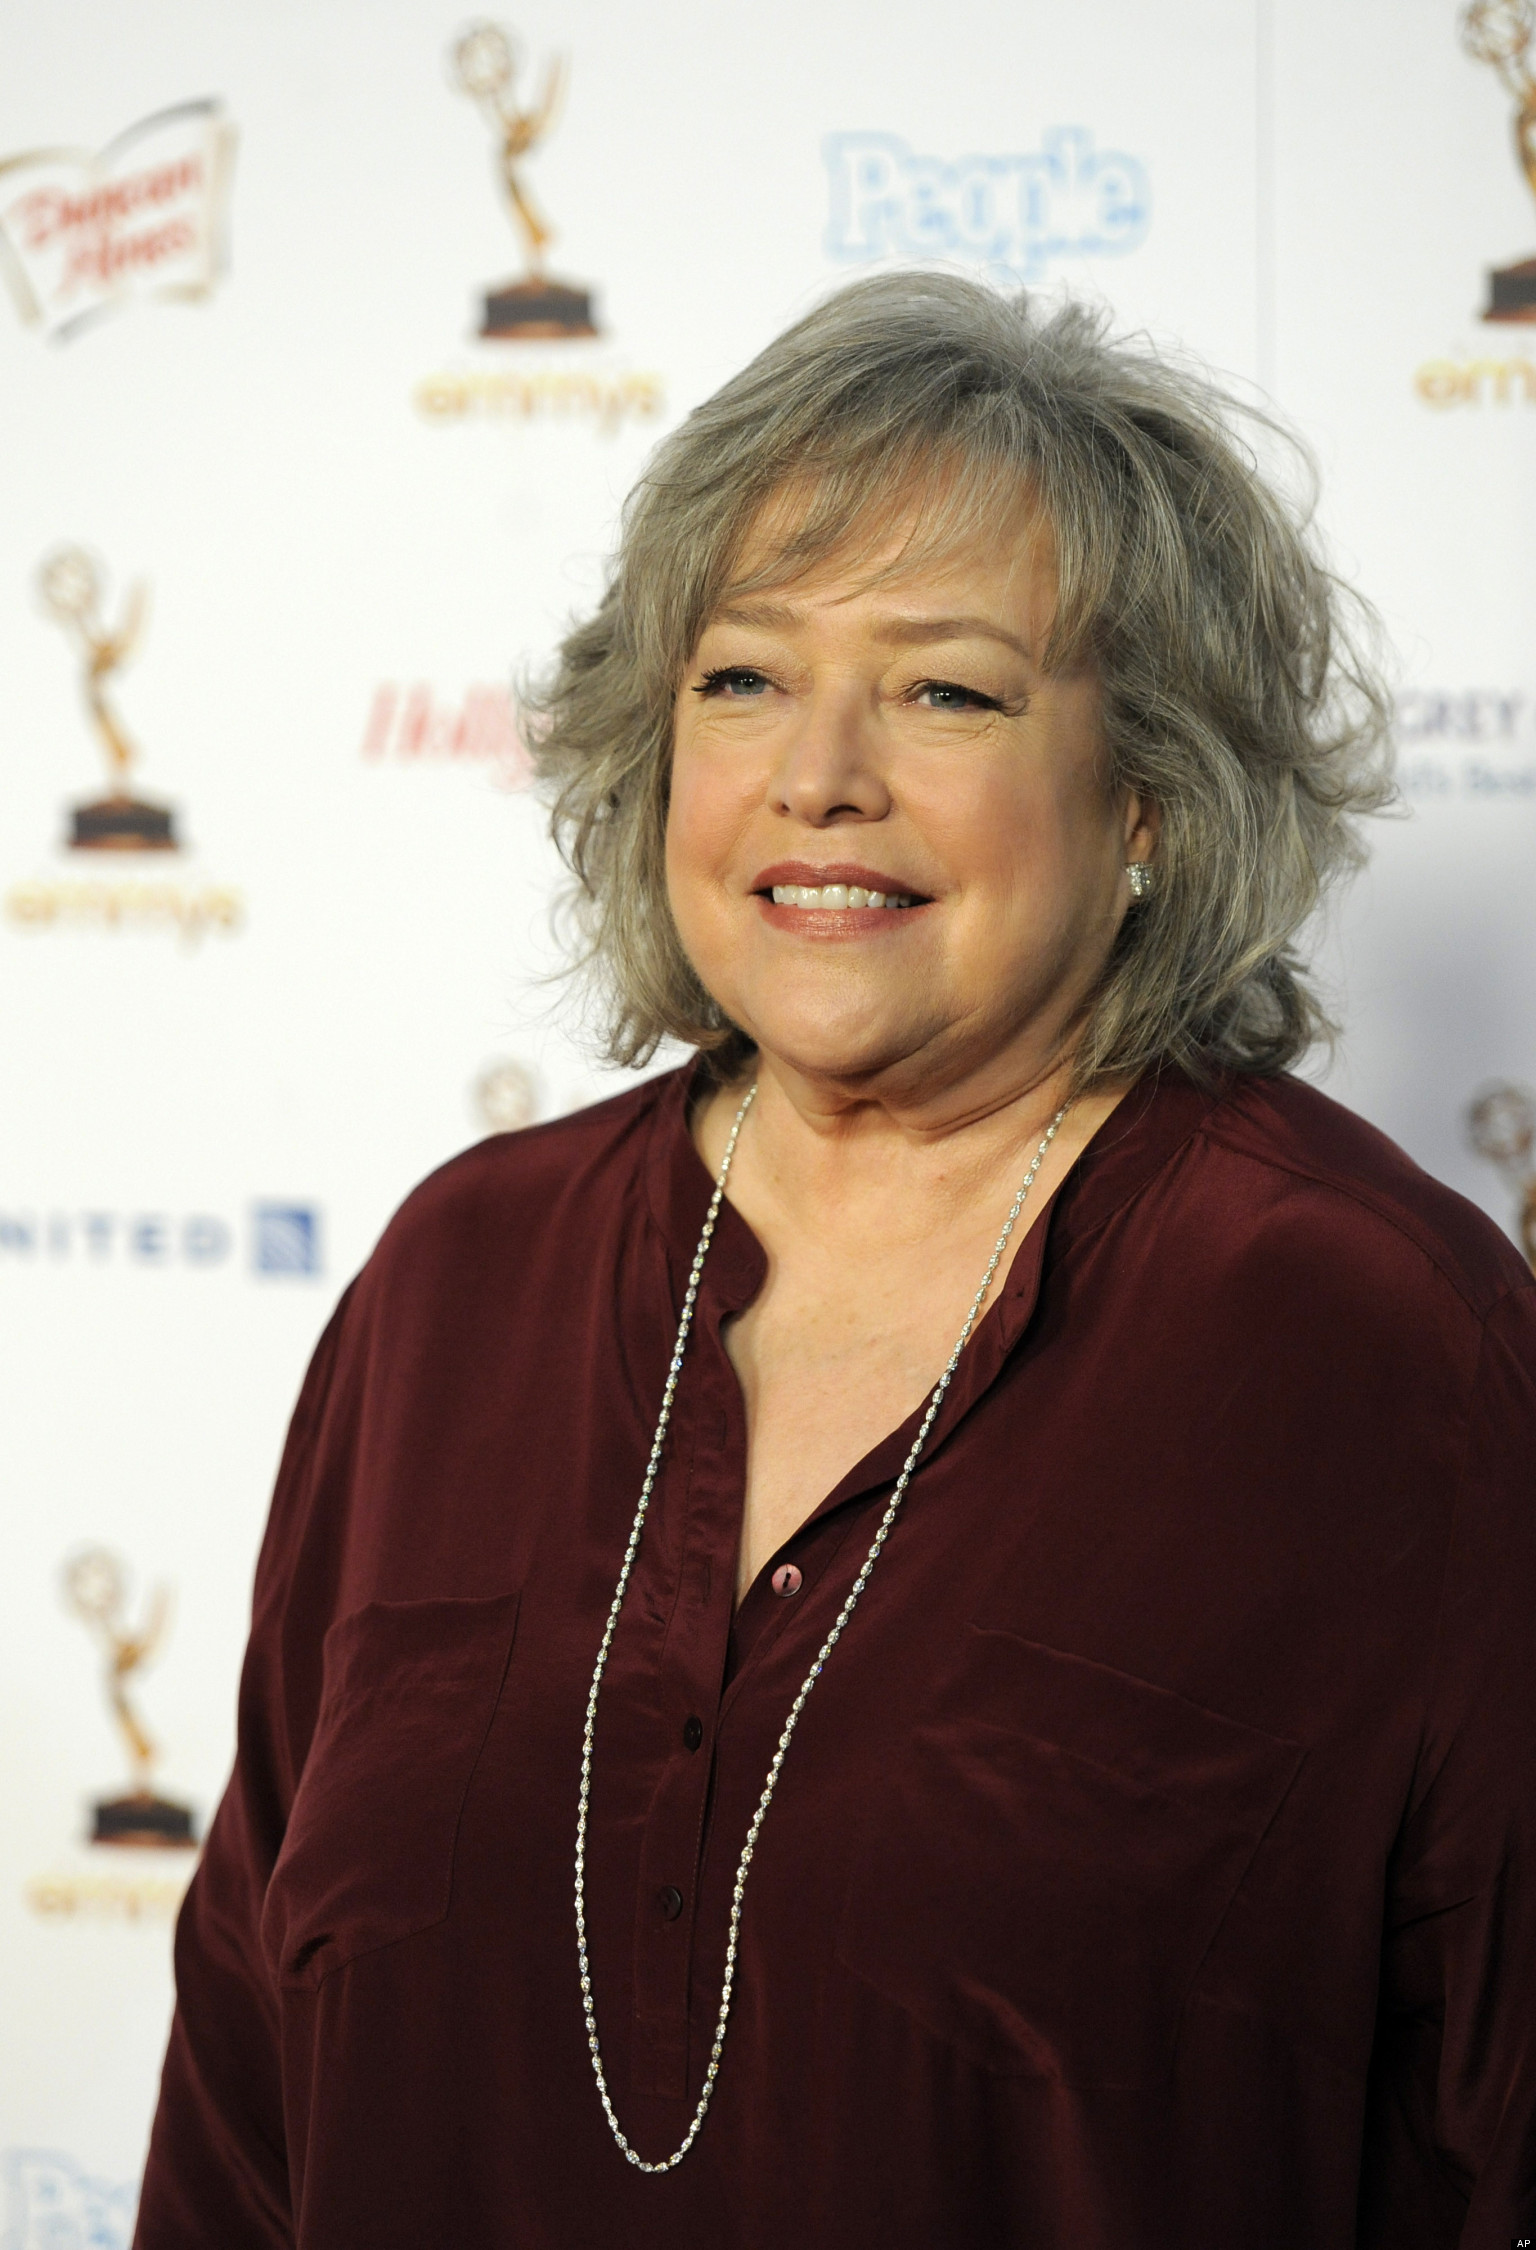 Kathy Bates | American Horror Story Wiki | FANDOM powered ...